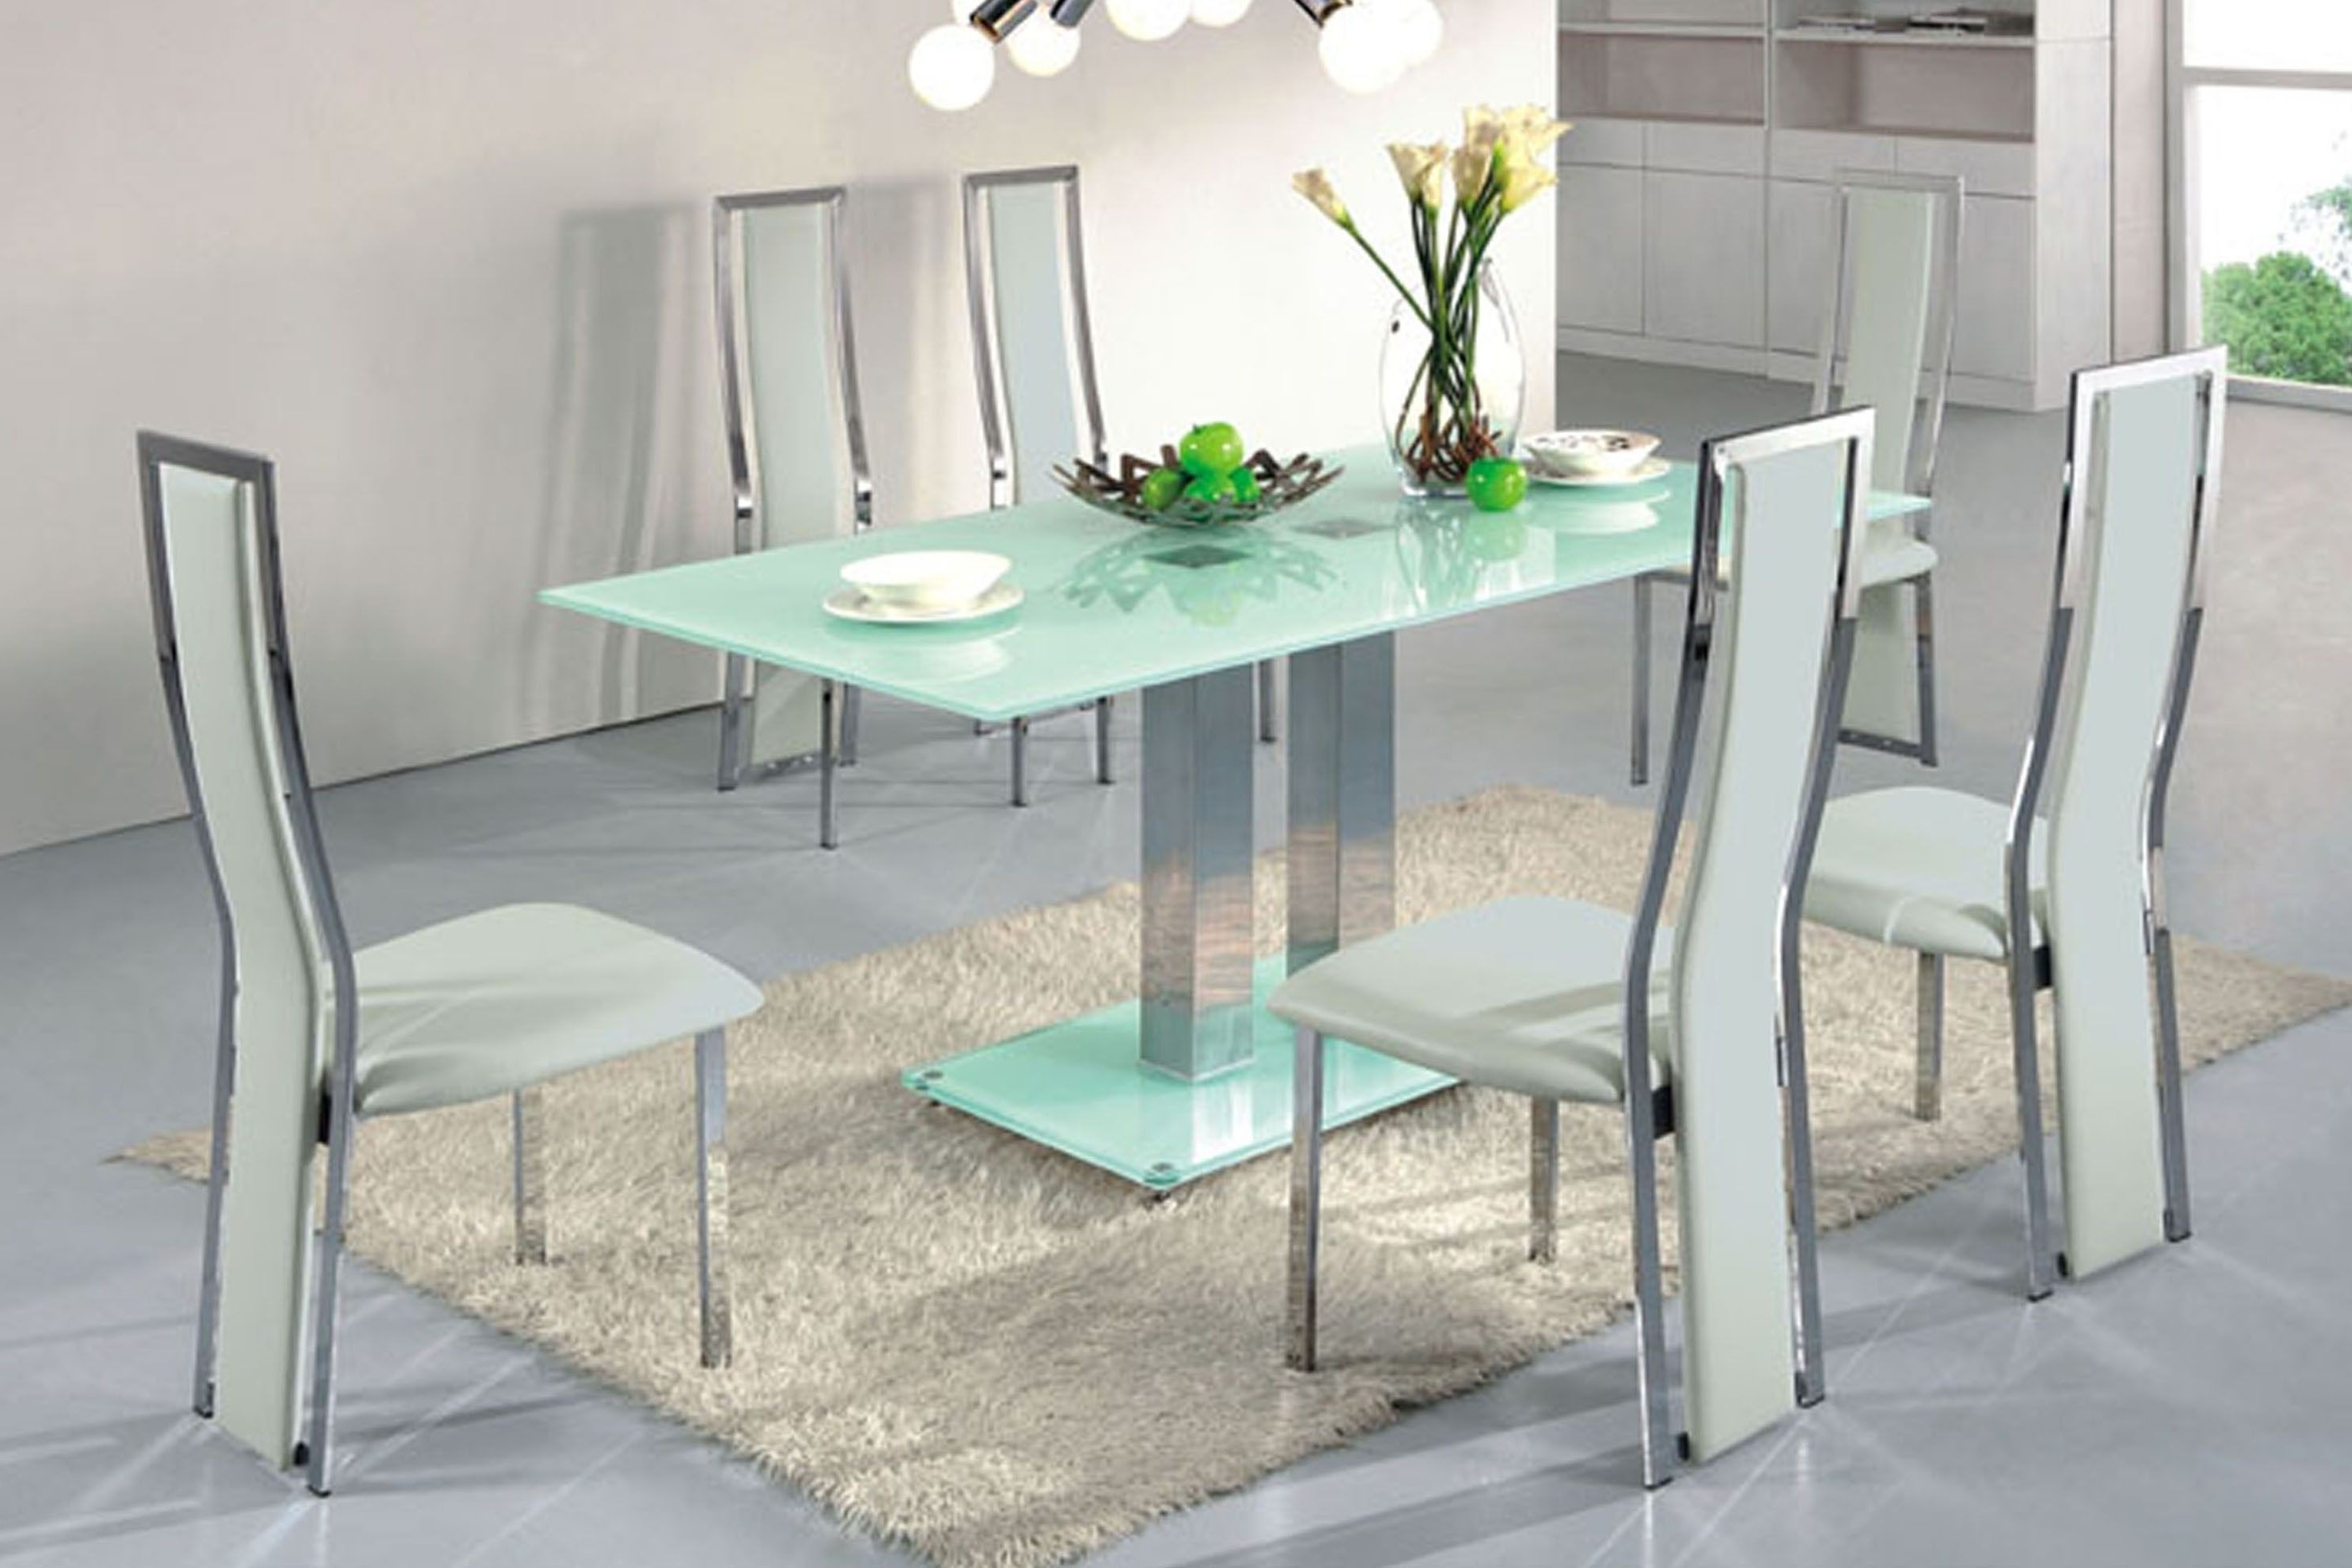 Smoked Glass Dining Tables And Chairs Intended For Most Current Round Smoked Glass Dining Table Elegant Modern Oval Glass Top Dining (View 15 of 25)